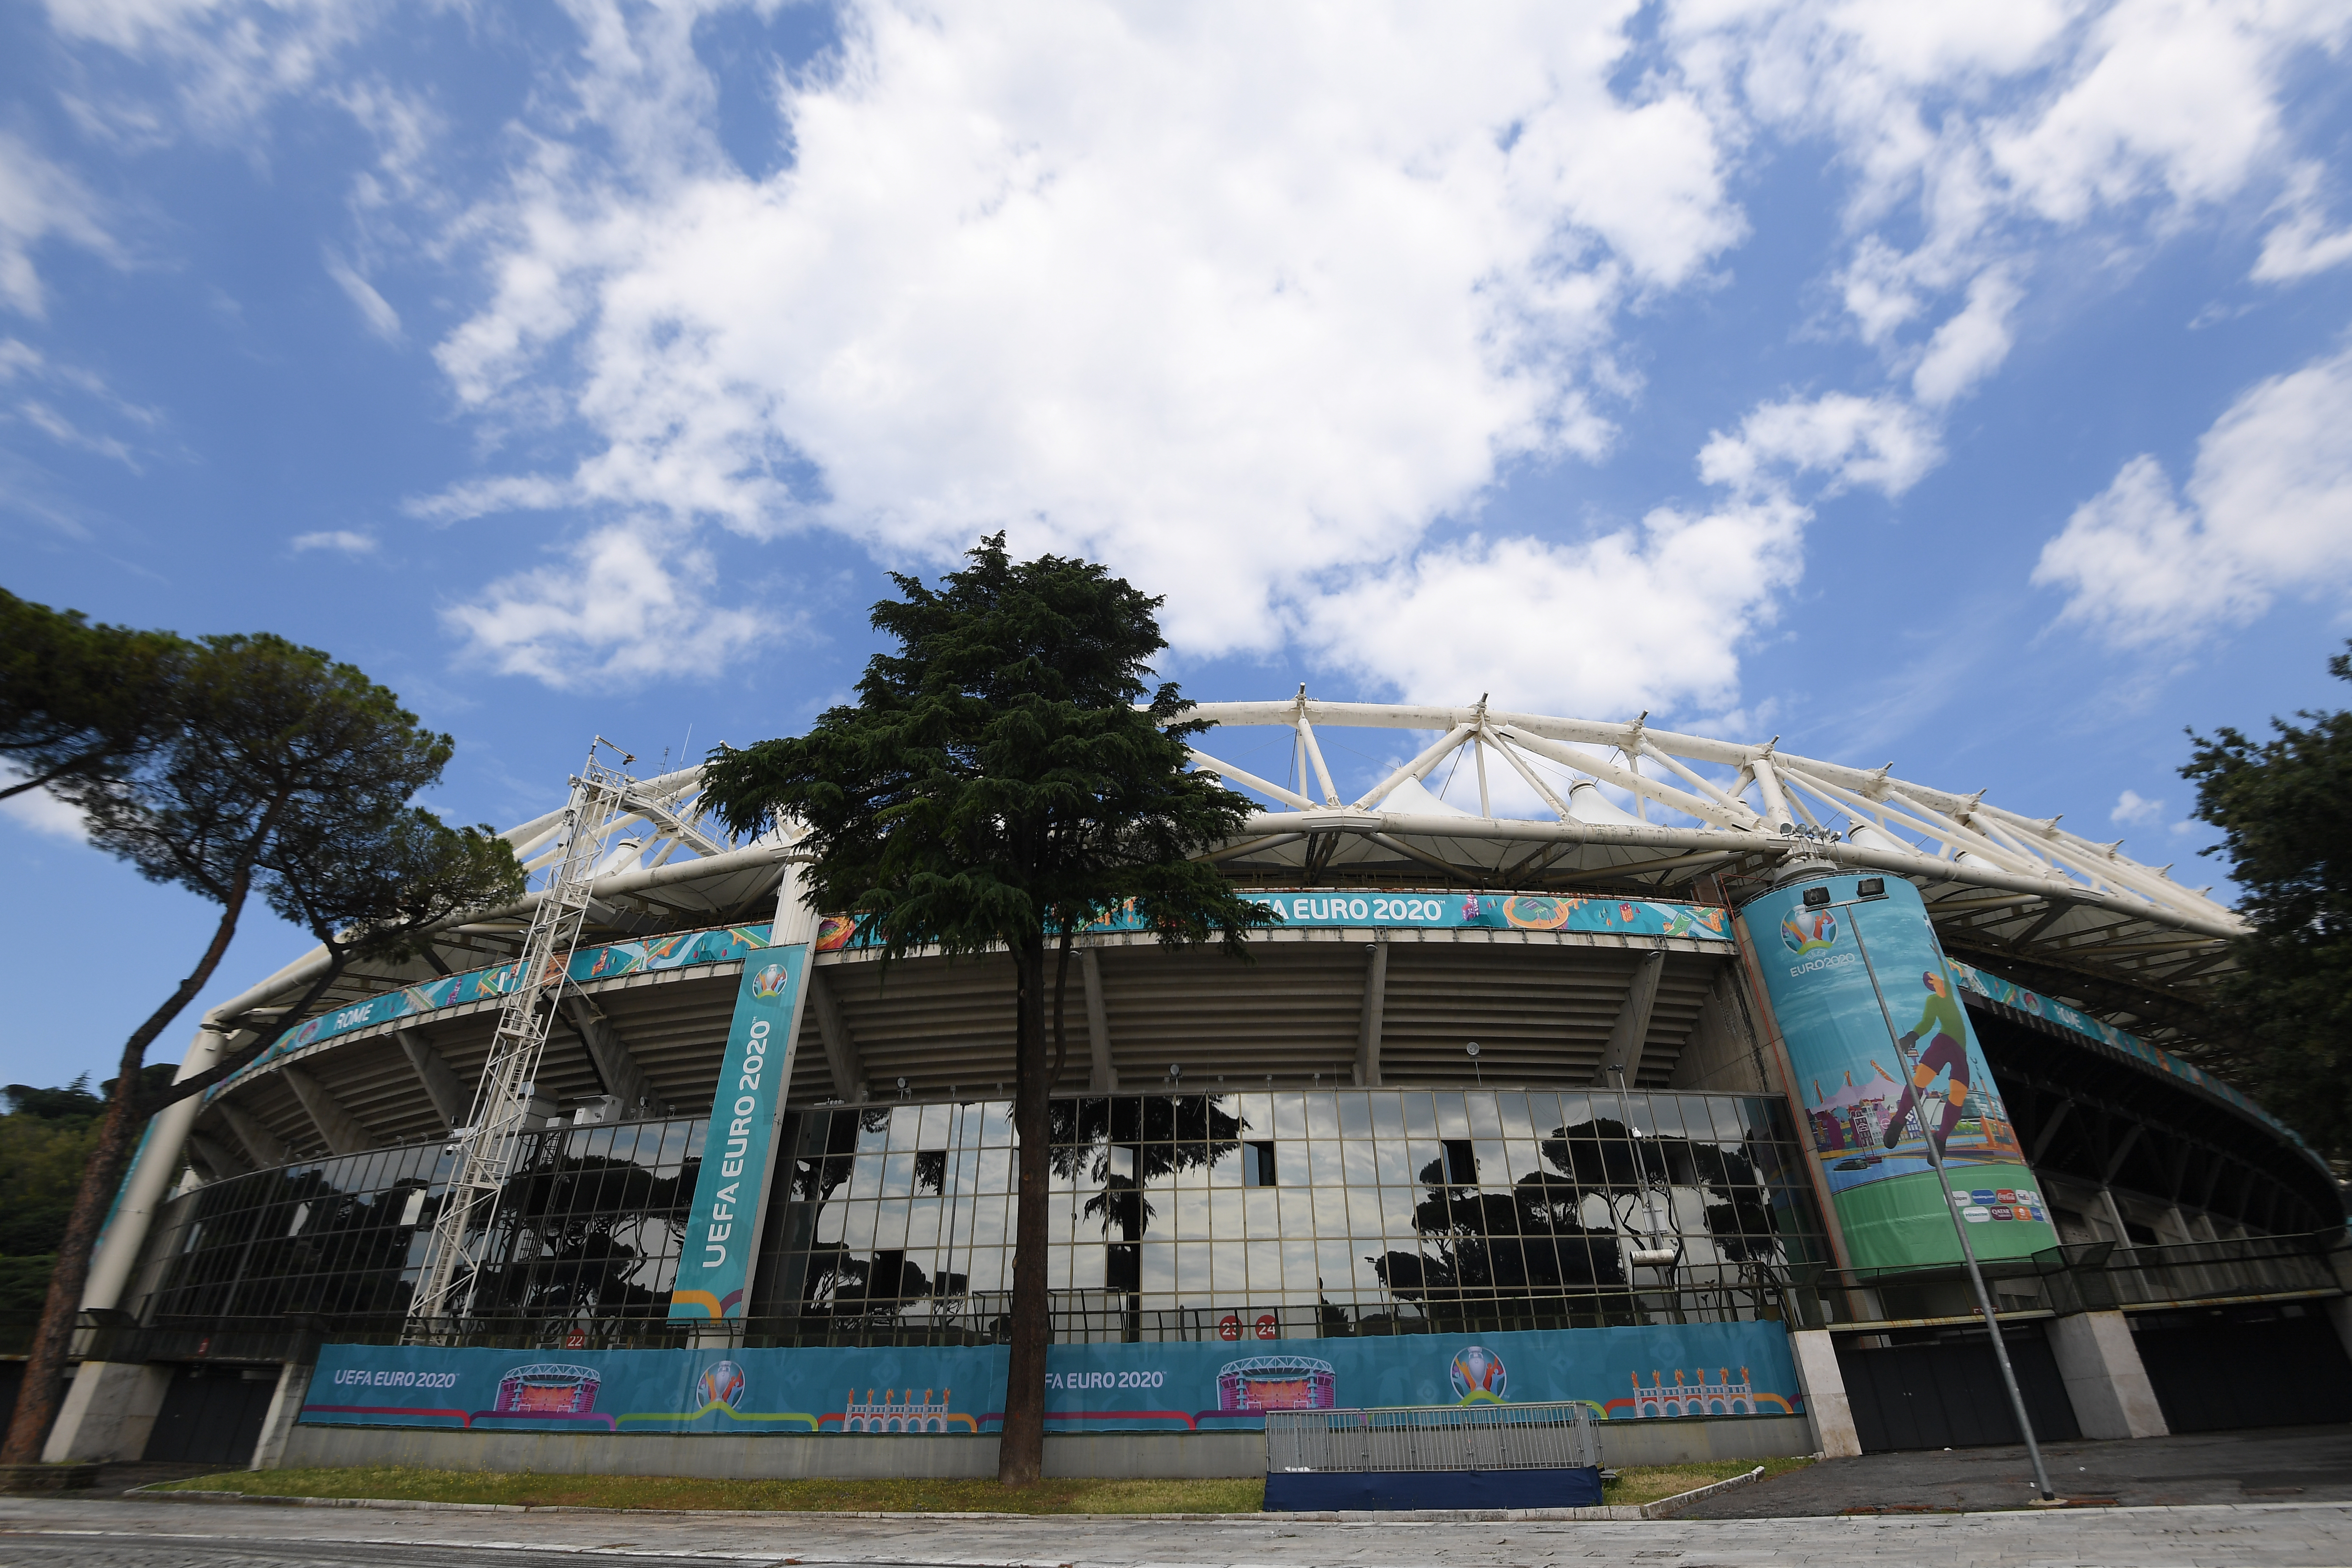 Soccer Football - Euro 2020 - Rome's Stadio Olimpico prepares for opening match - Stadio Olimpico, Rome, Italy - June 9, 2021 General view outside the stadium ahead of Euro 2020 REUTERS/Alberto Lingria